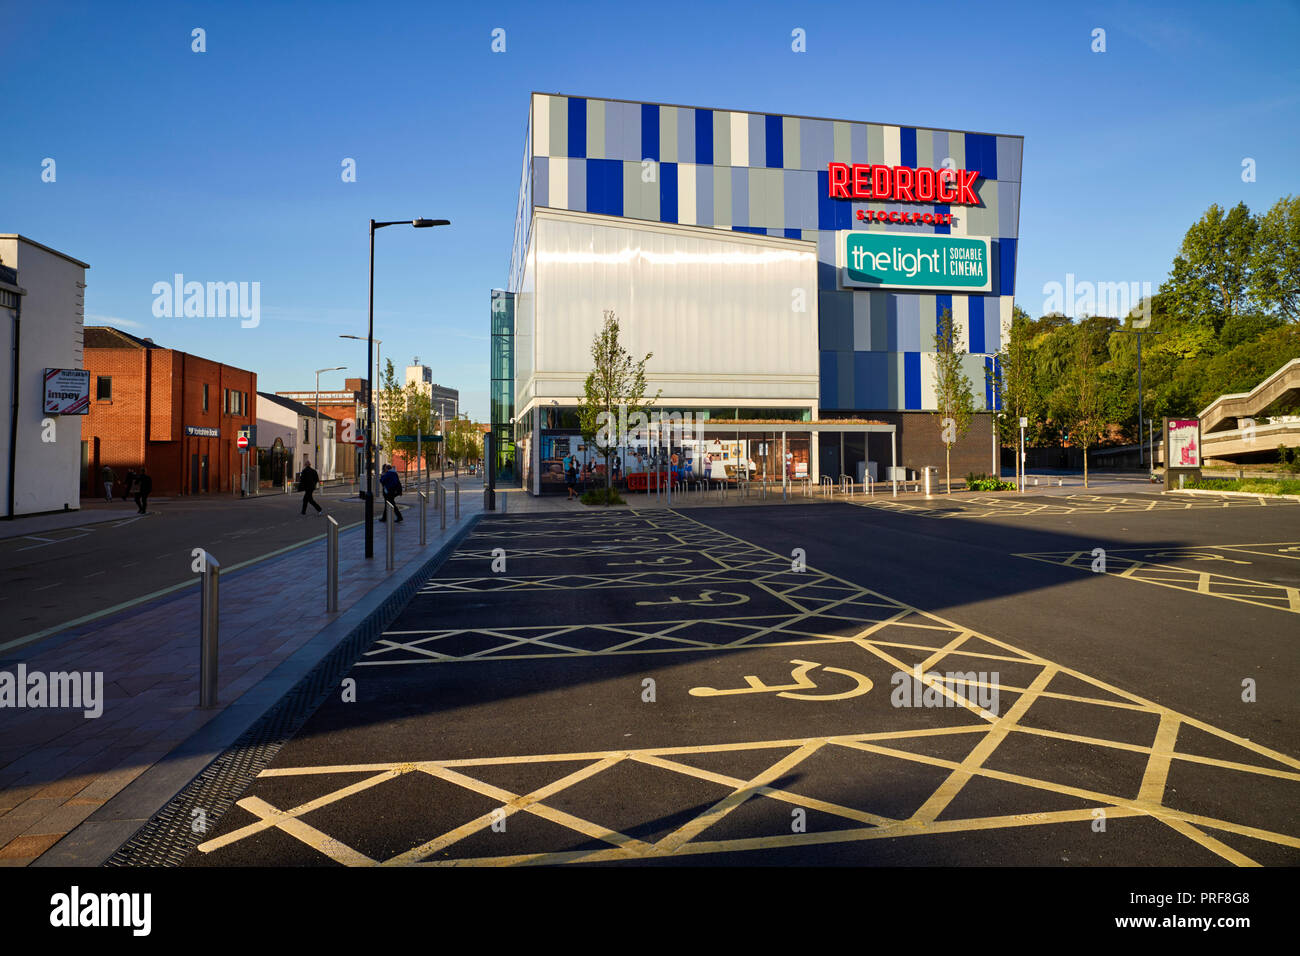 Redrock building in Stockport with multiple disabled car parking spaces - Stock Image